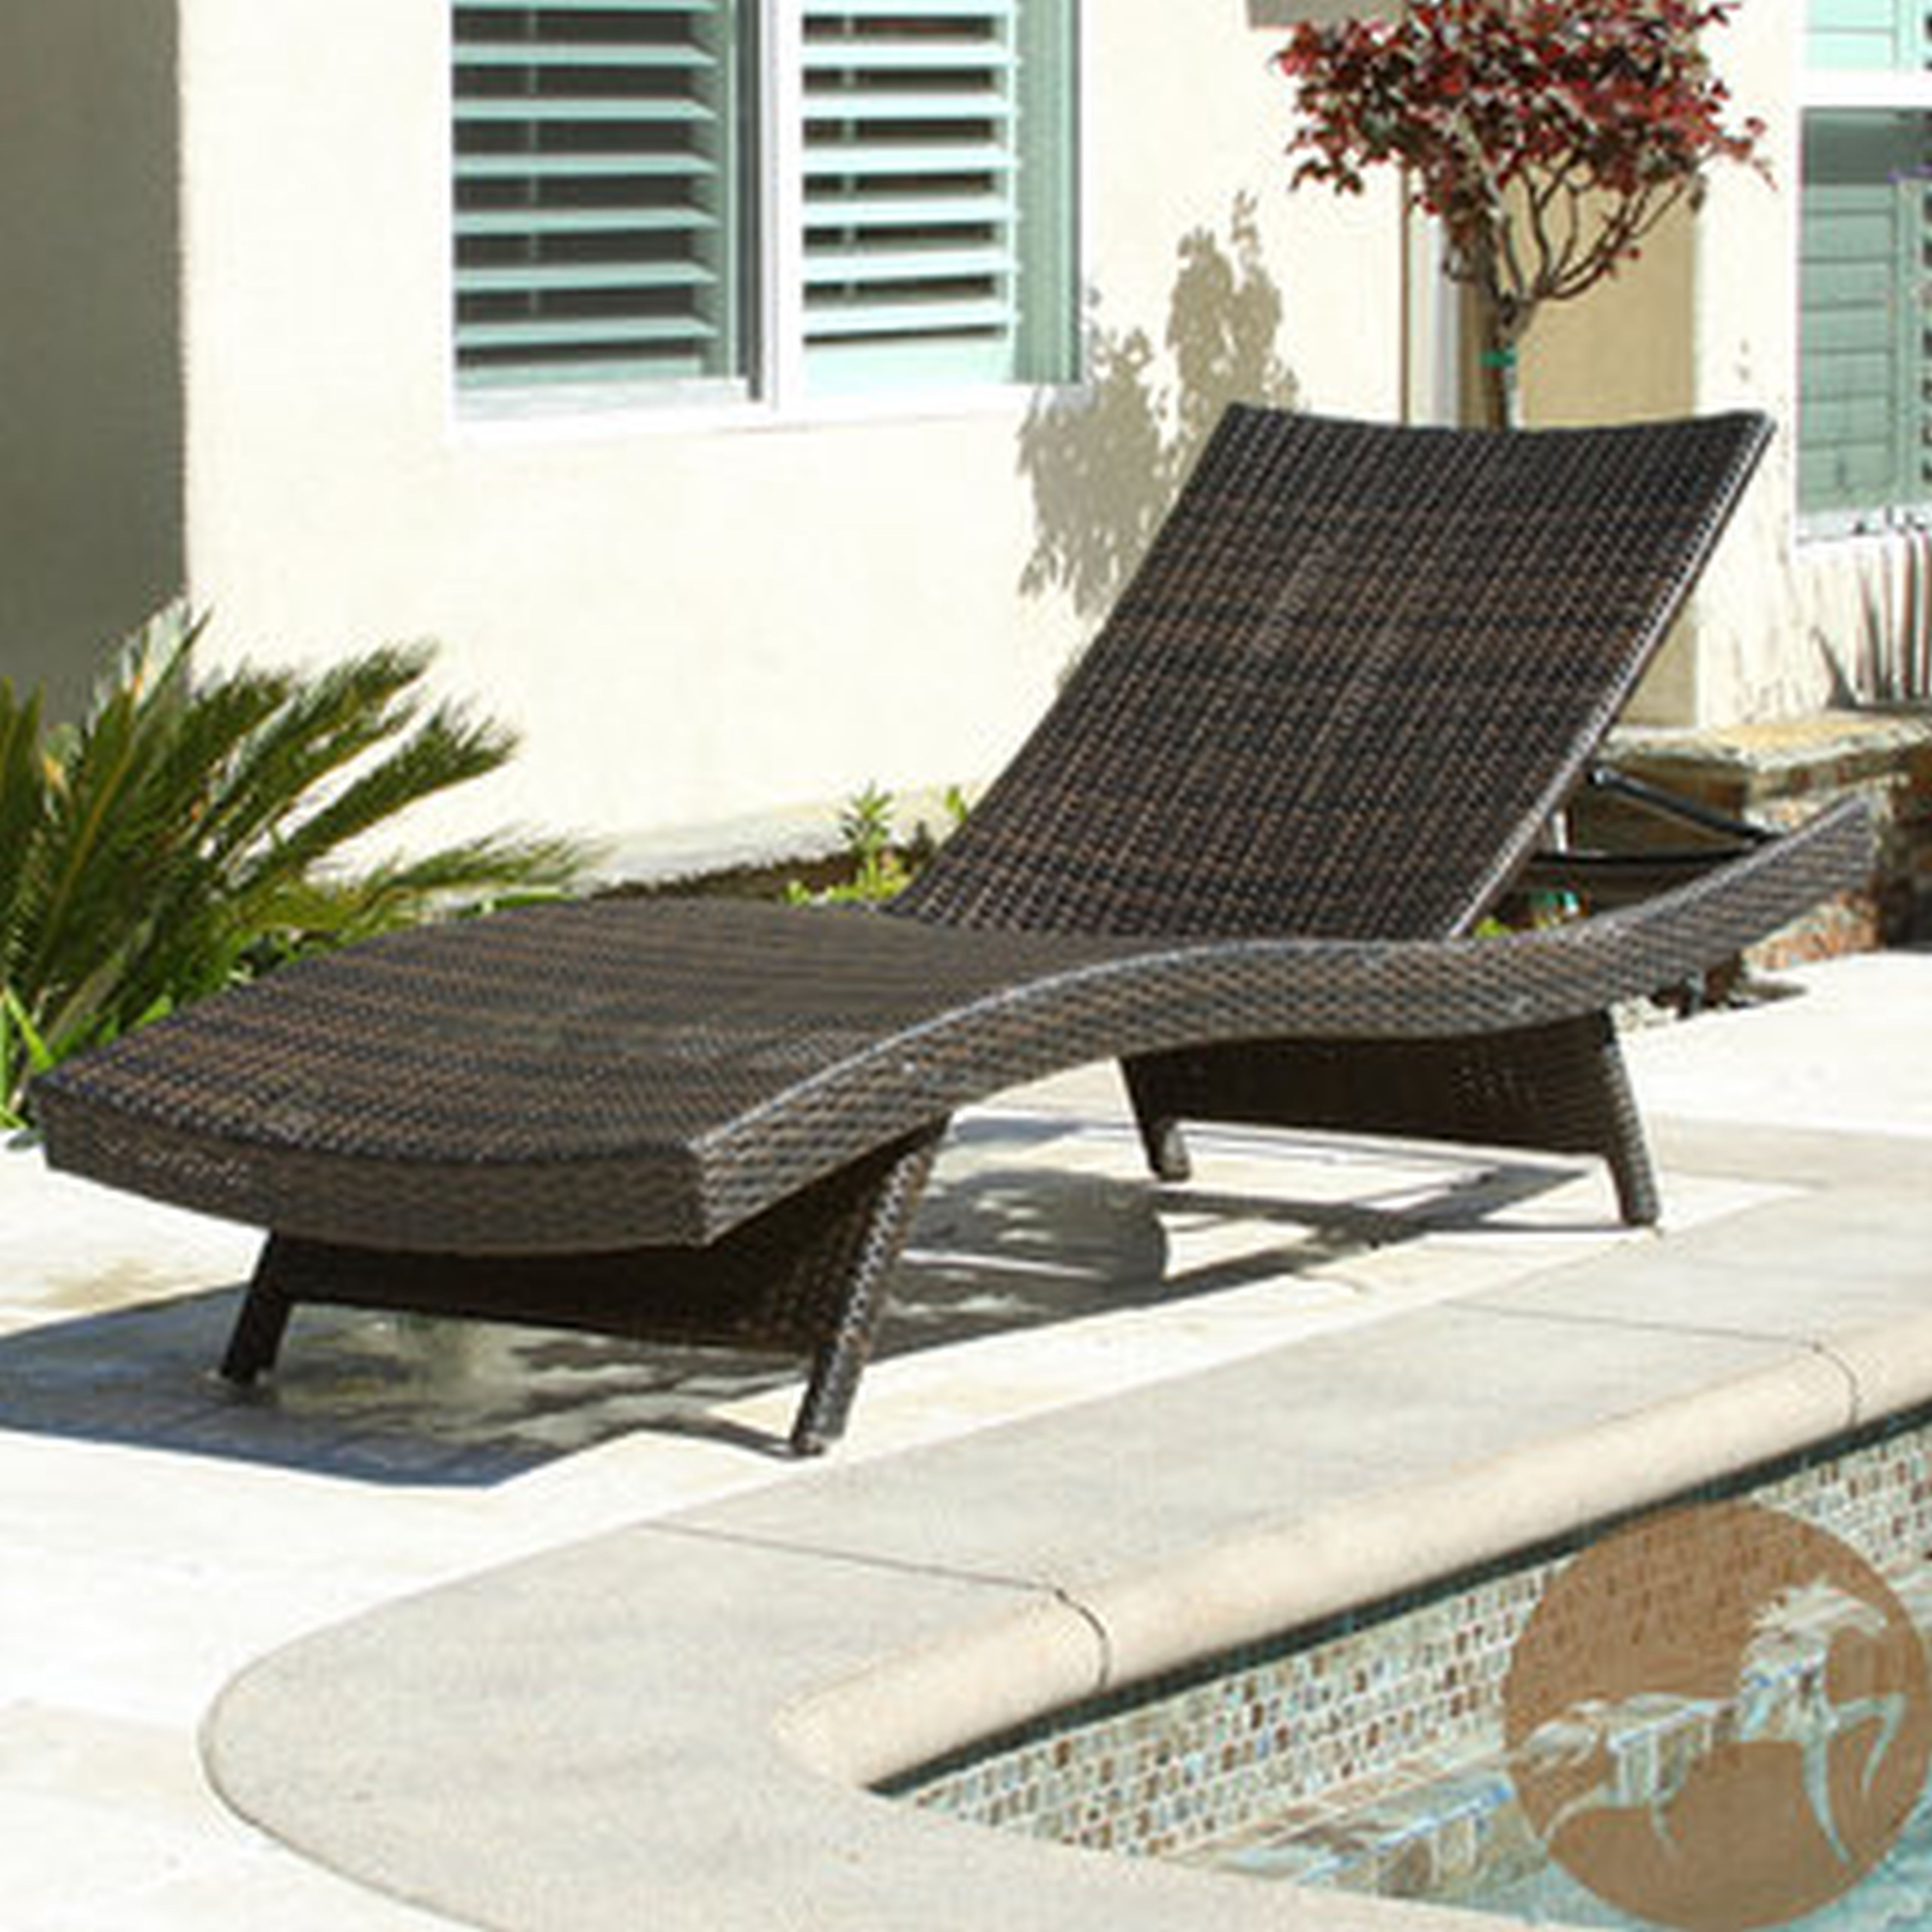 Newest Chaise Lounge Chairs For Outdoor In Convertible Chair : Cushions Rattan Chair Cushions High Back Patio (View 9 of 15)